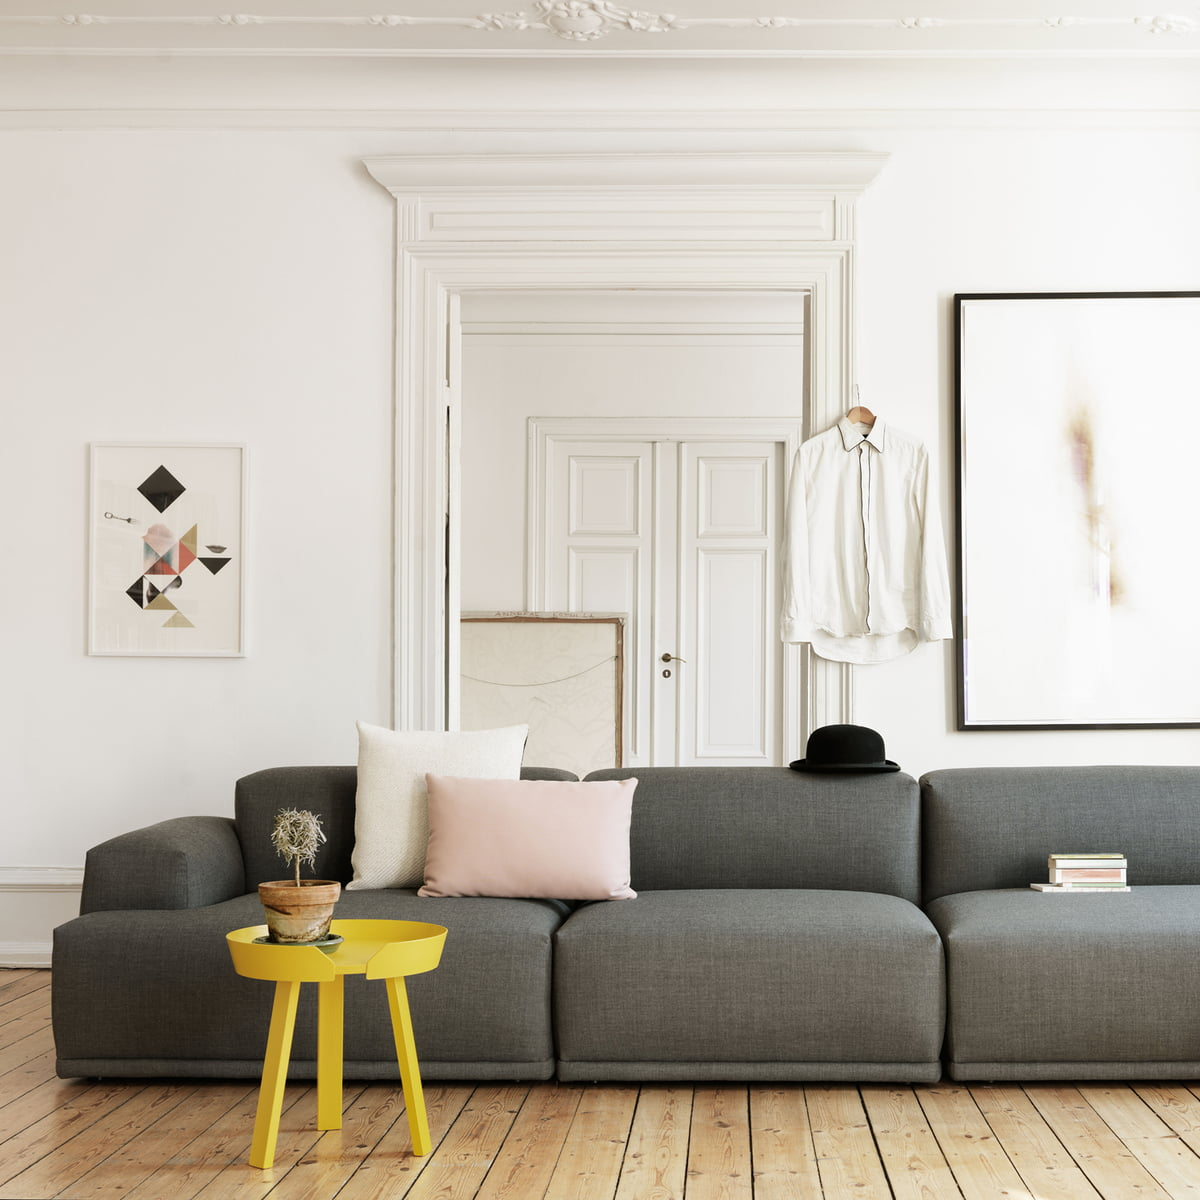 mingle kissen von muuto im wohndesign shop. Black Bedroom Furniture Sets. Home Design Ideas